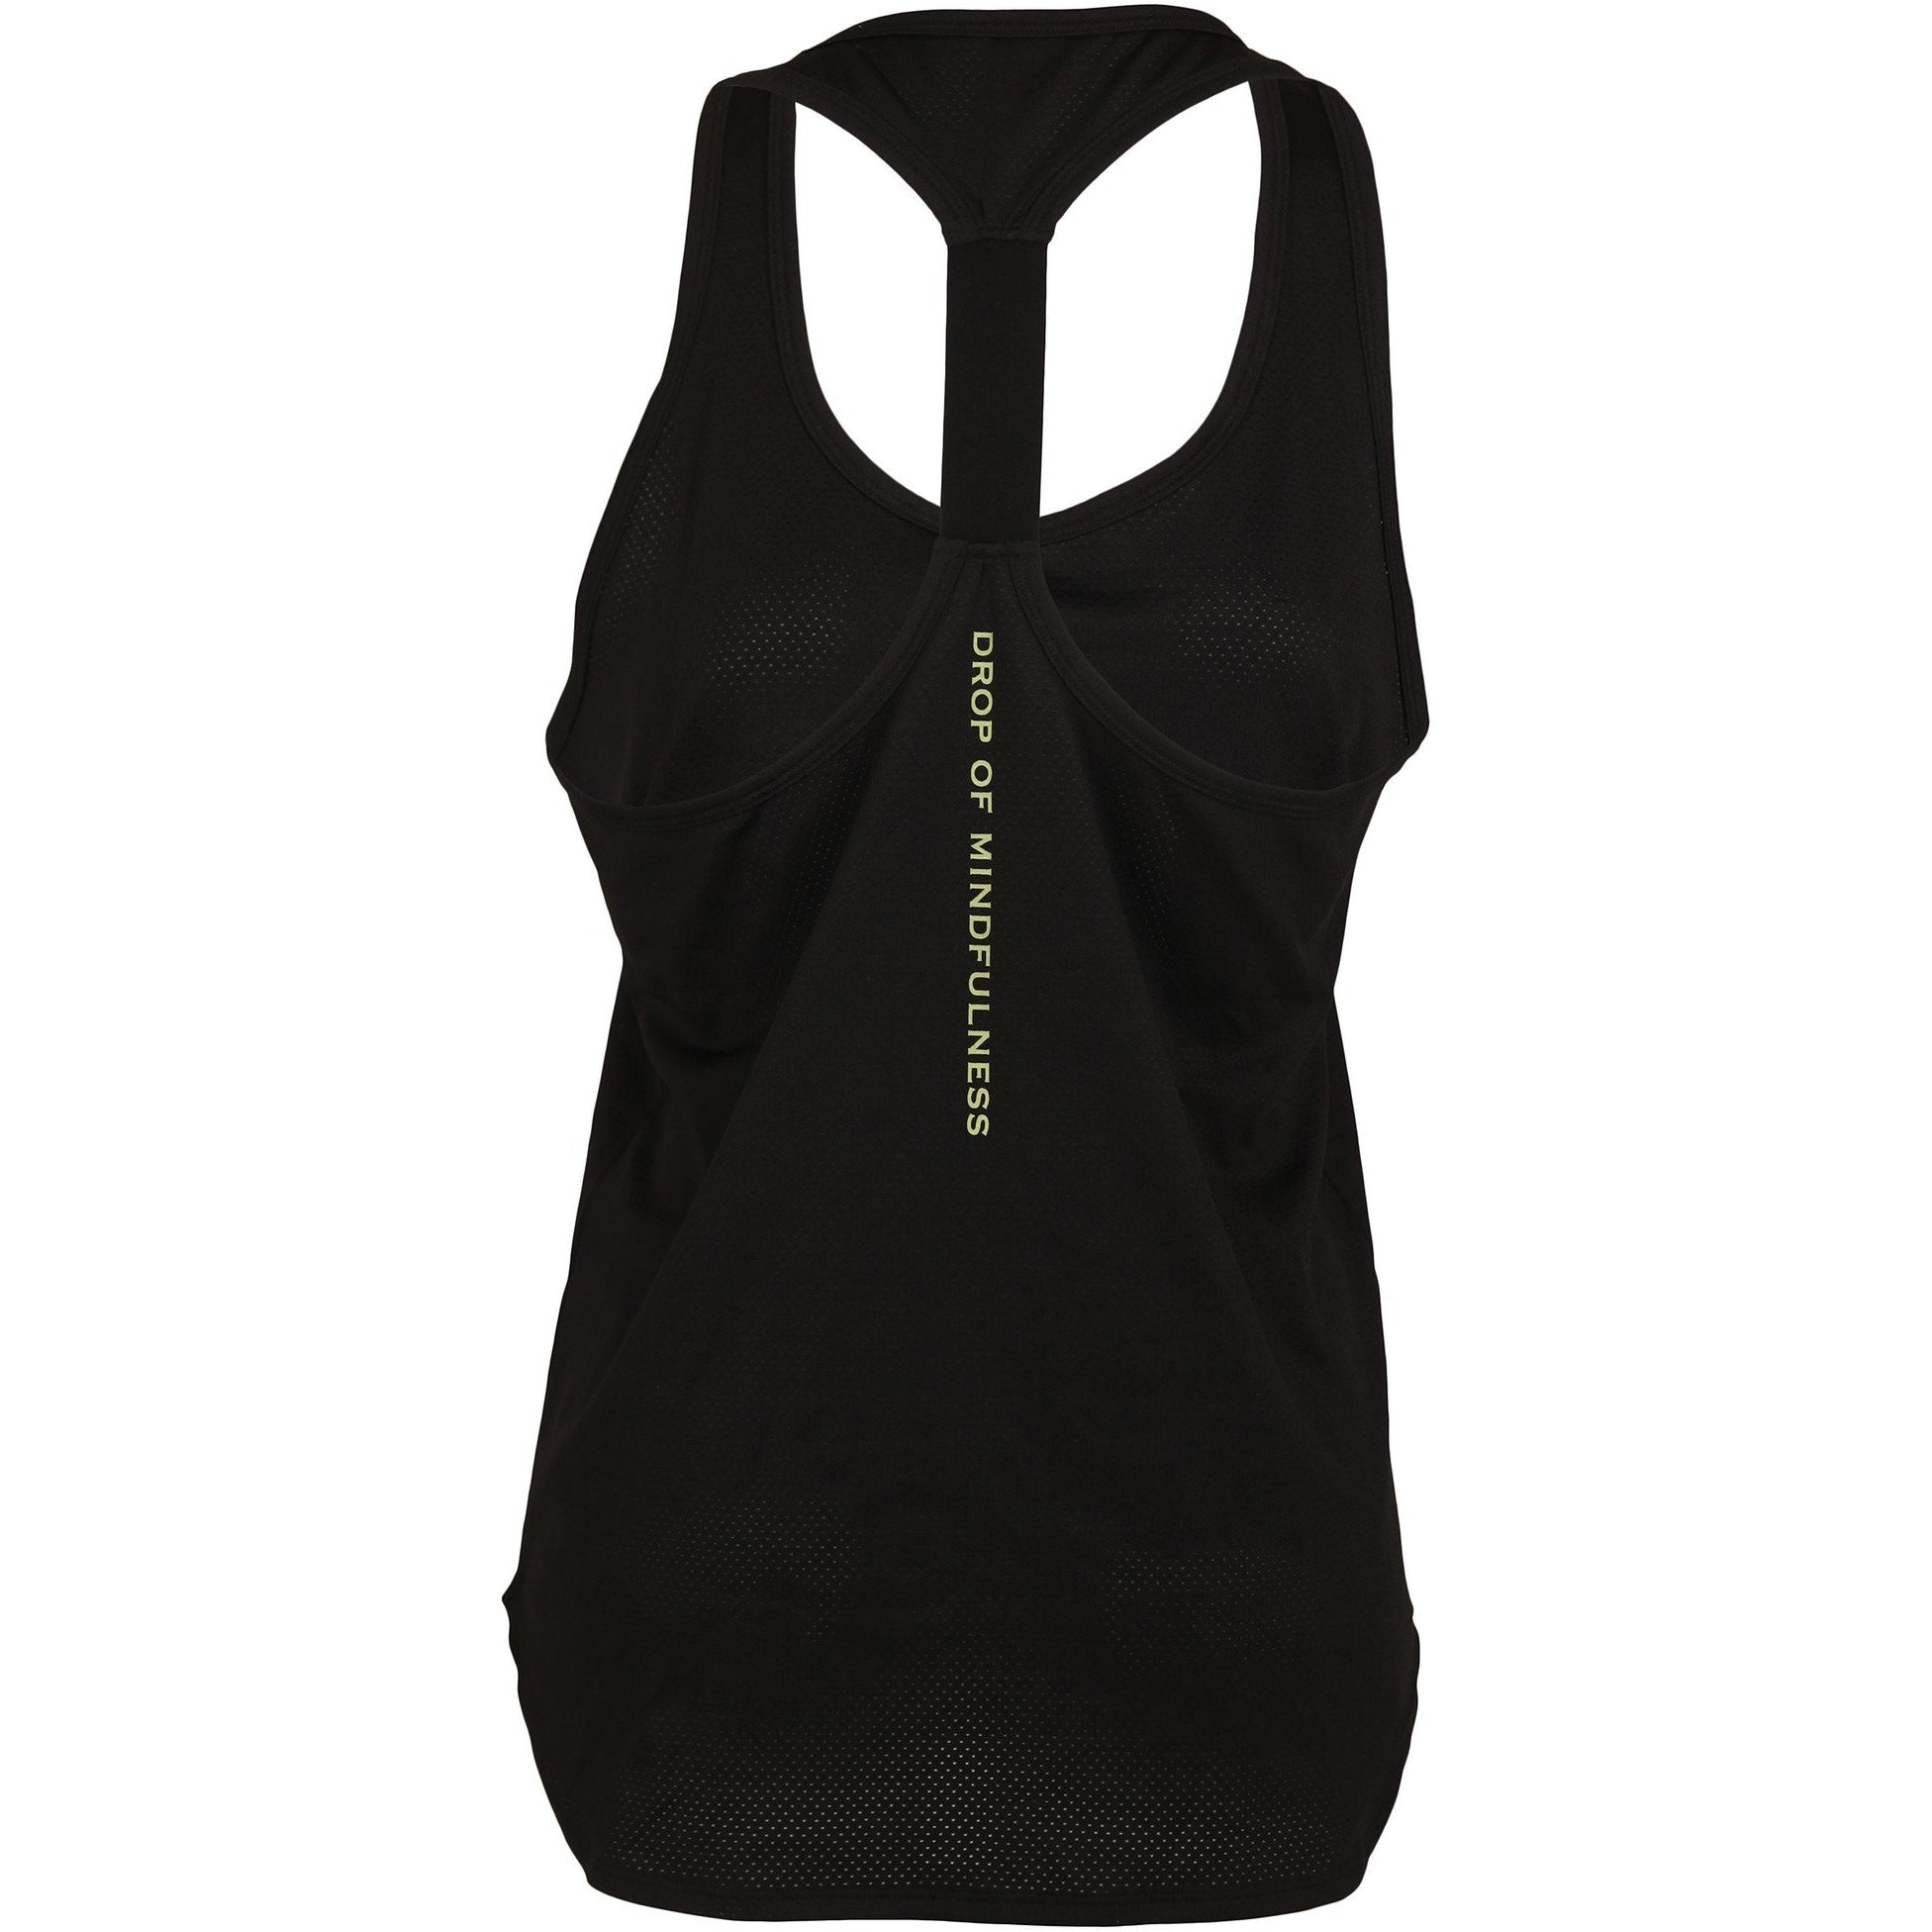 Tank Top - Americano Black (NEW)